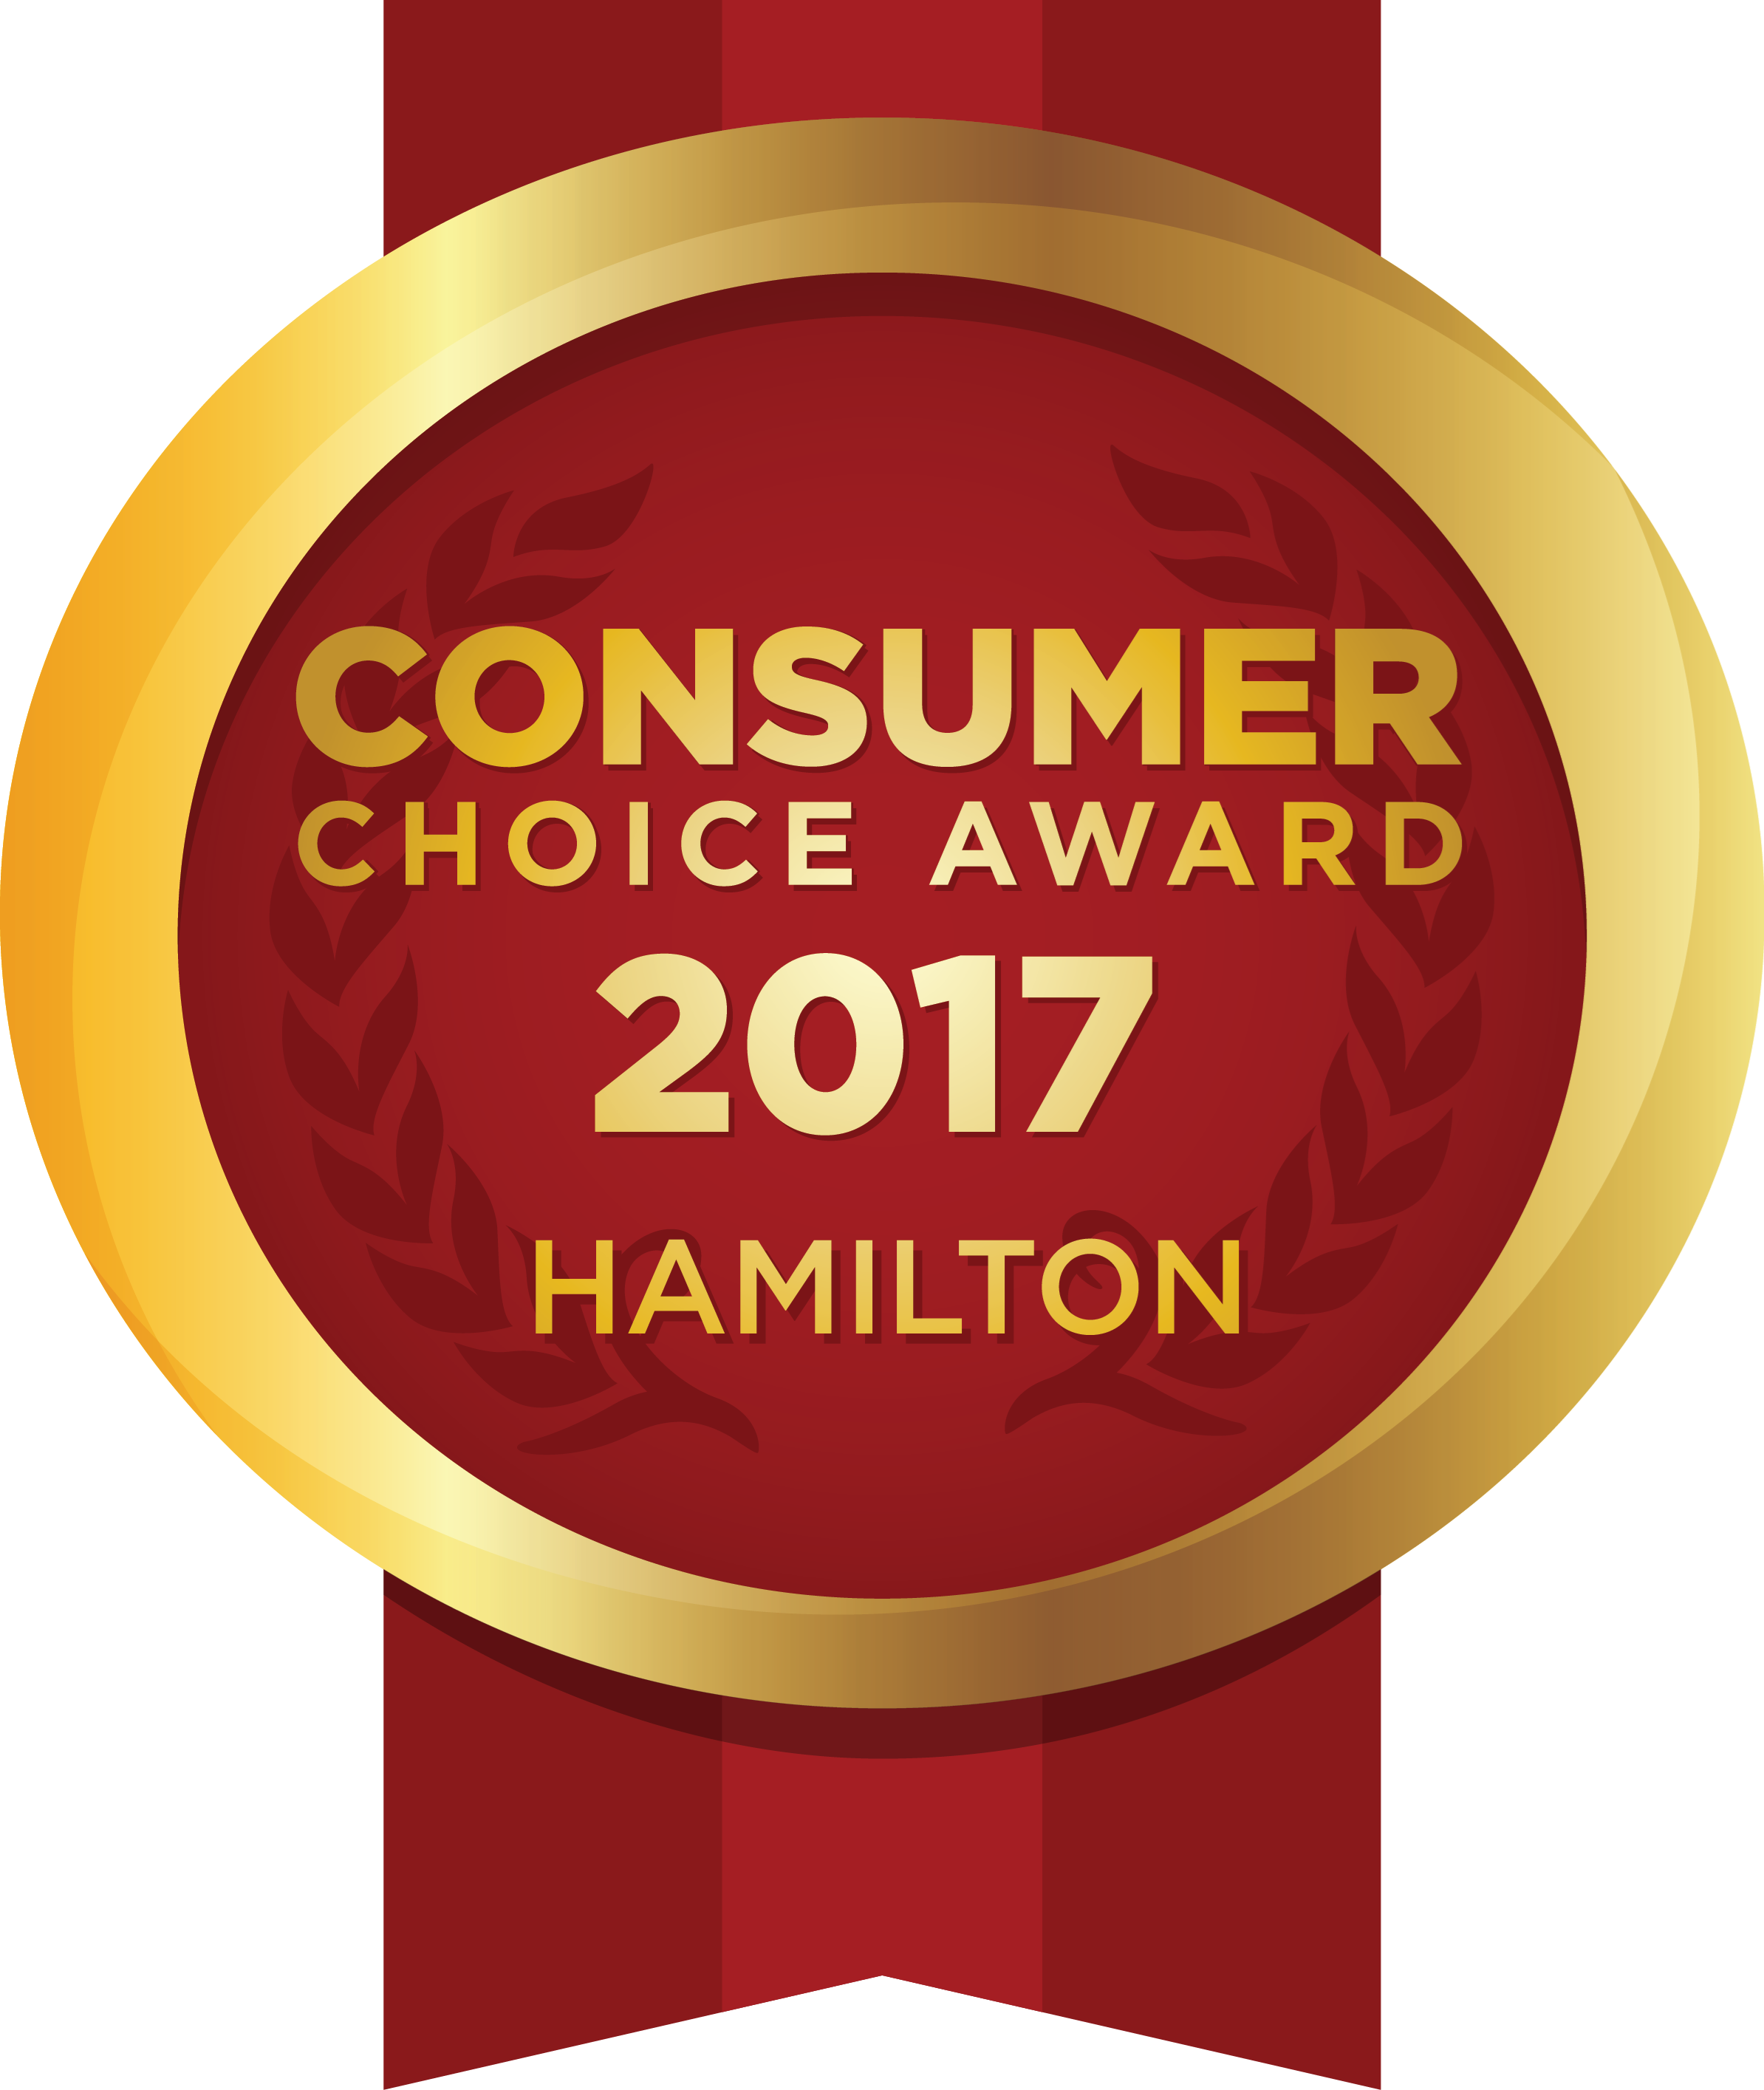 2017 Consumer Choice Award Winner